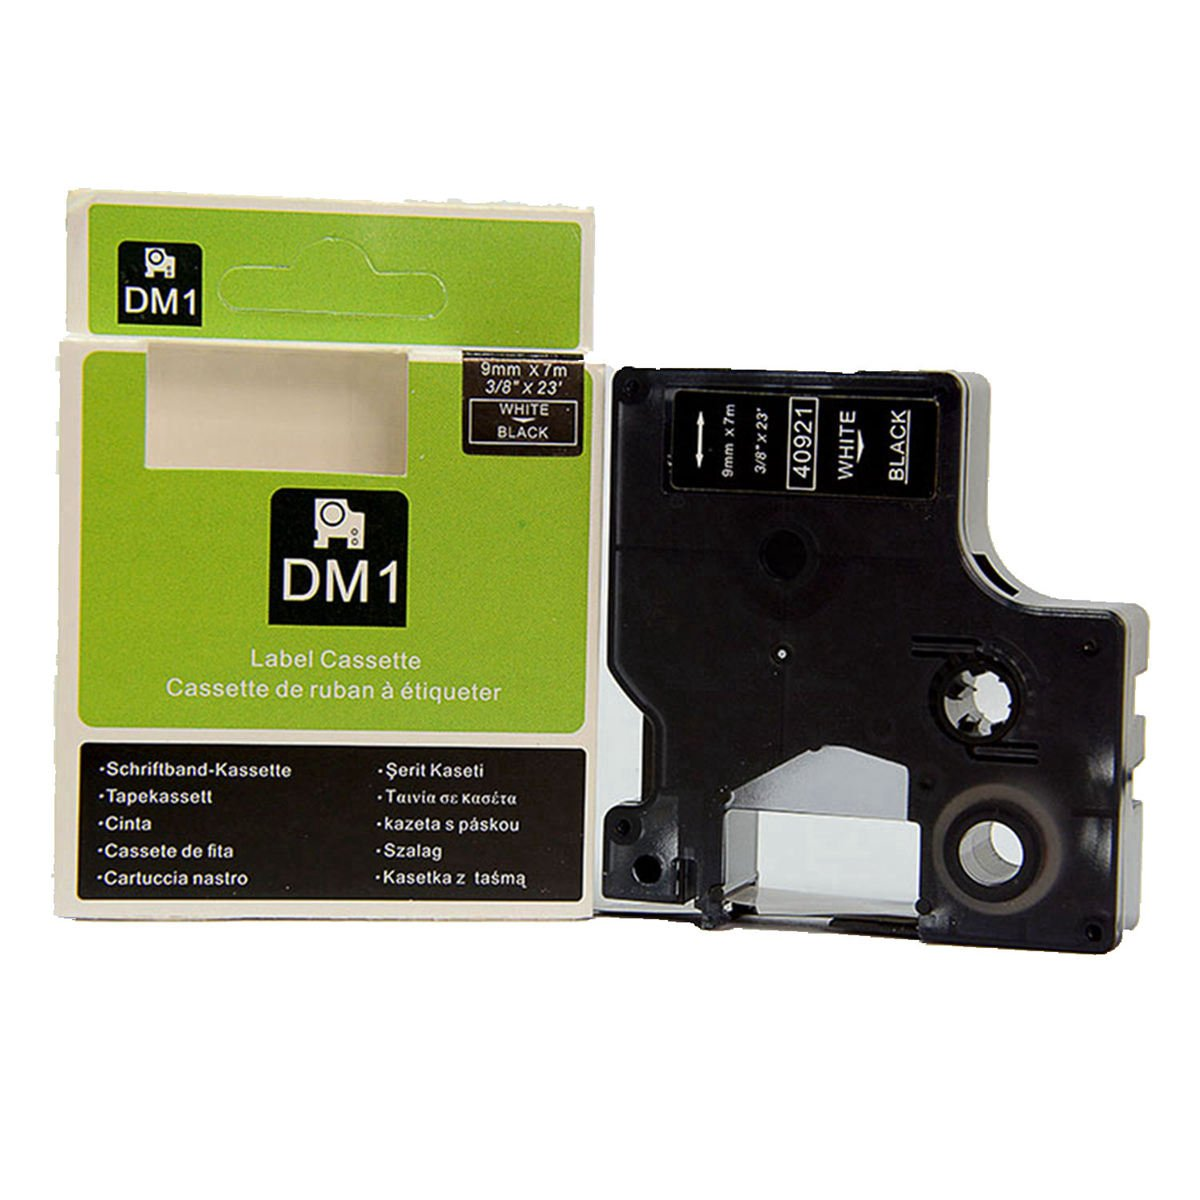 Amazon.com: Hartwii White on Black Label Cassette Compatible for DYMOD1 40921 Label Tape 9mm 7m (3/8 x 23